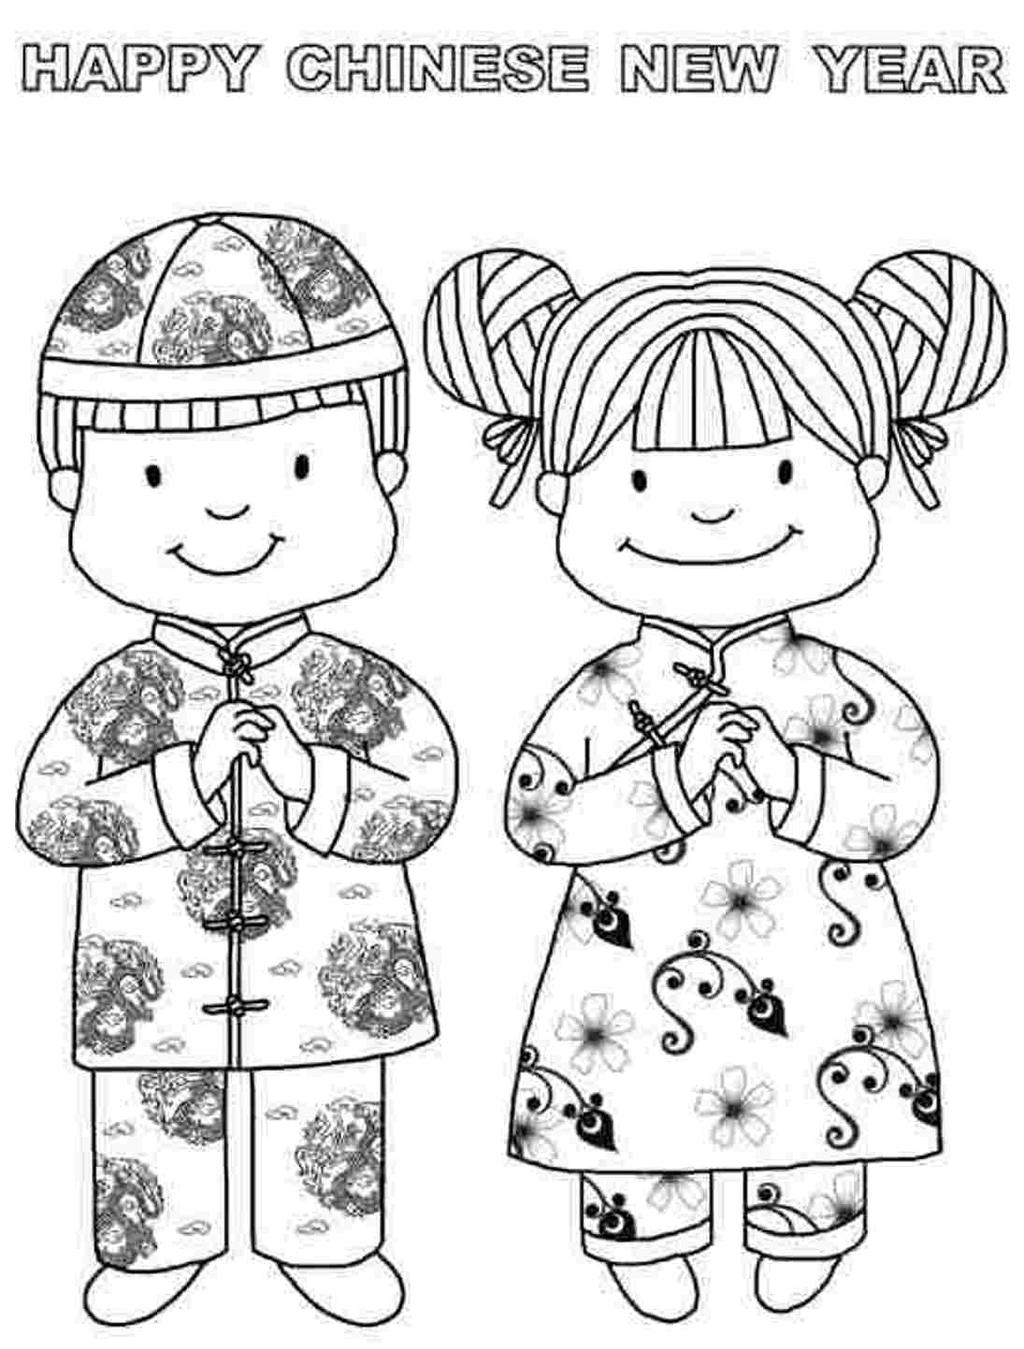 Chinese New Year Coloring Pages Kids Line Drawing - Free ...